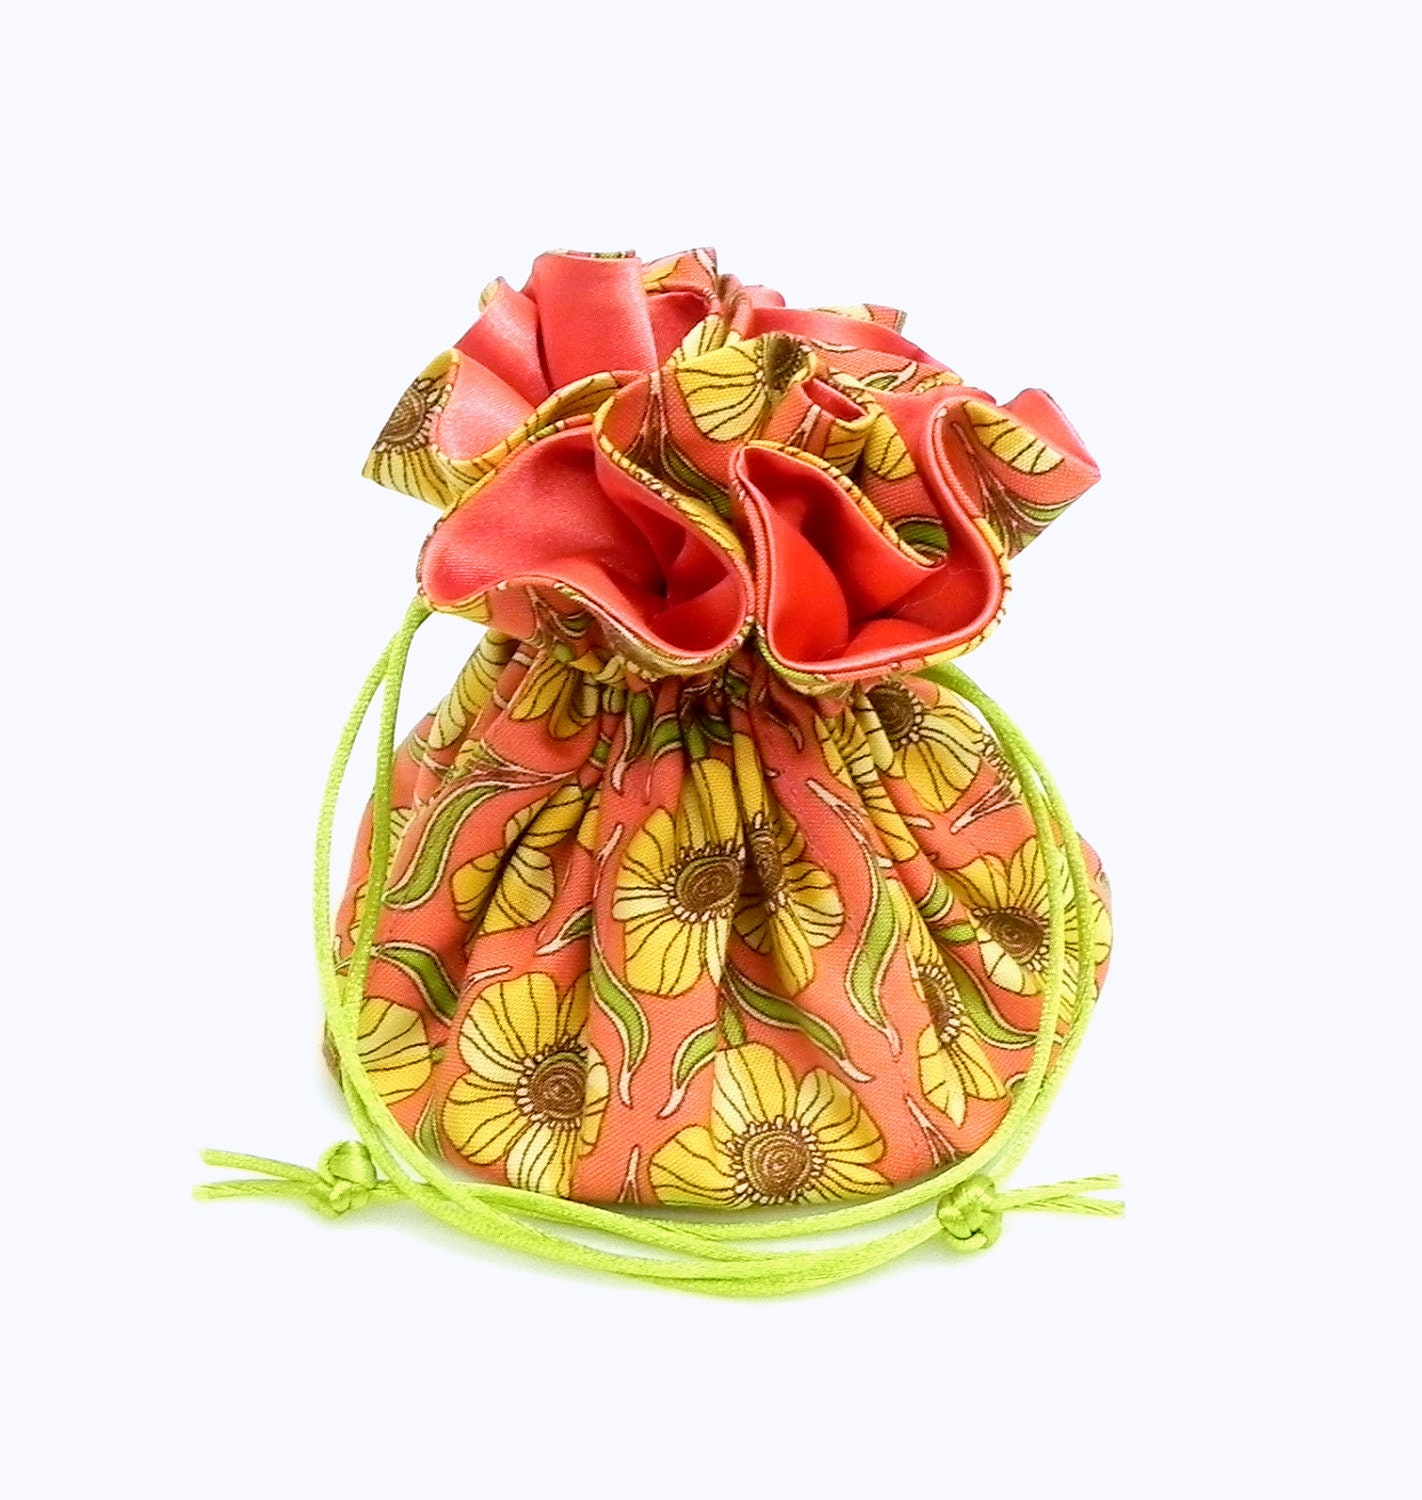 Drawstring Jewelry Pouch - Coral, yellow and green floral travel bag - GaranceCouture